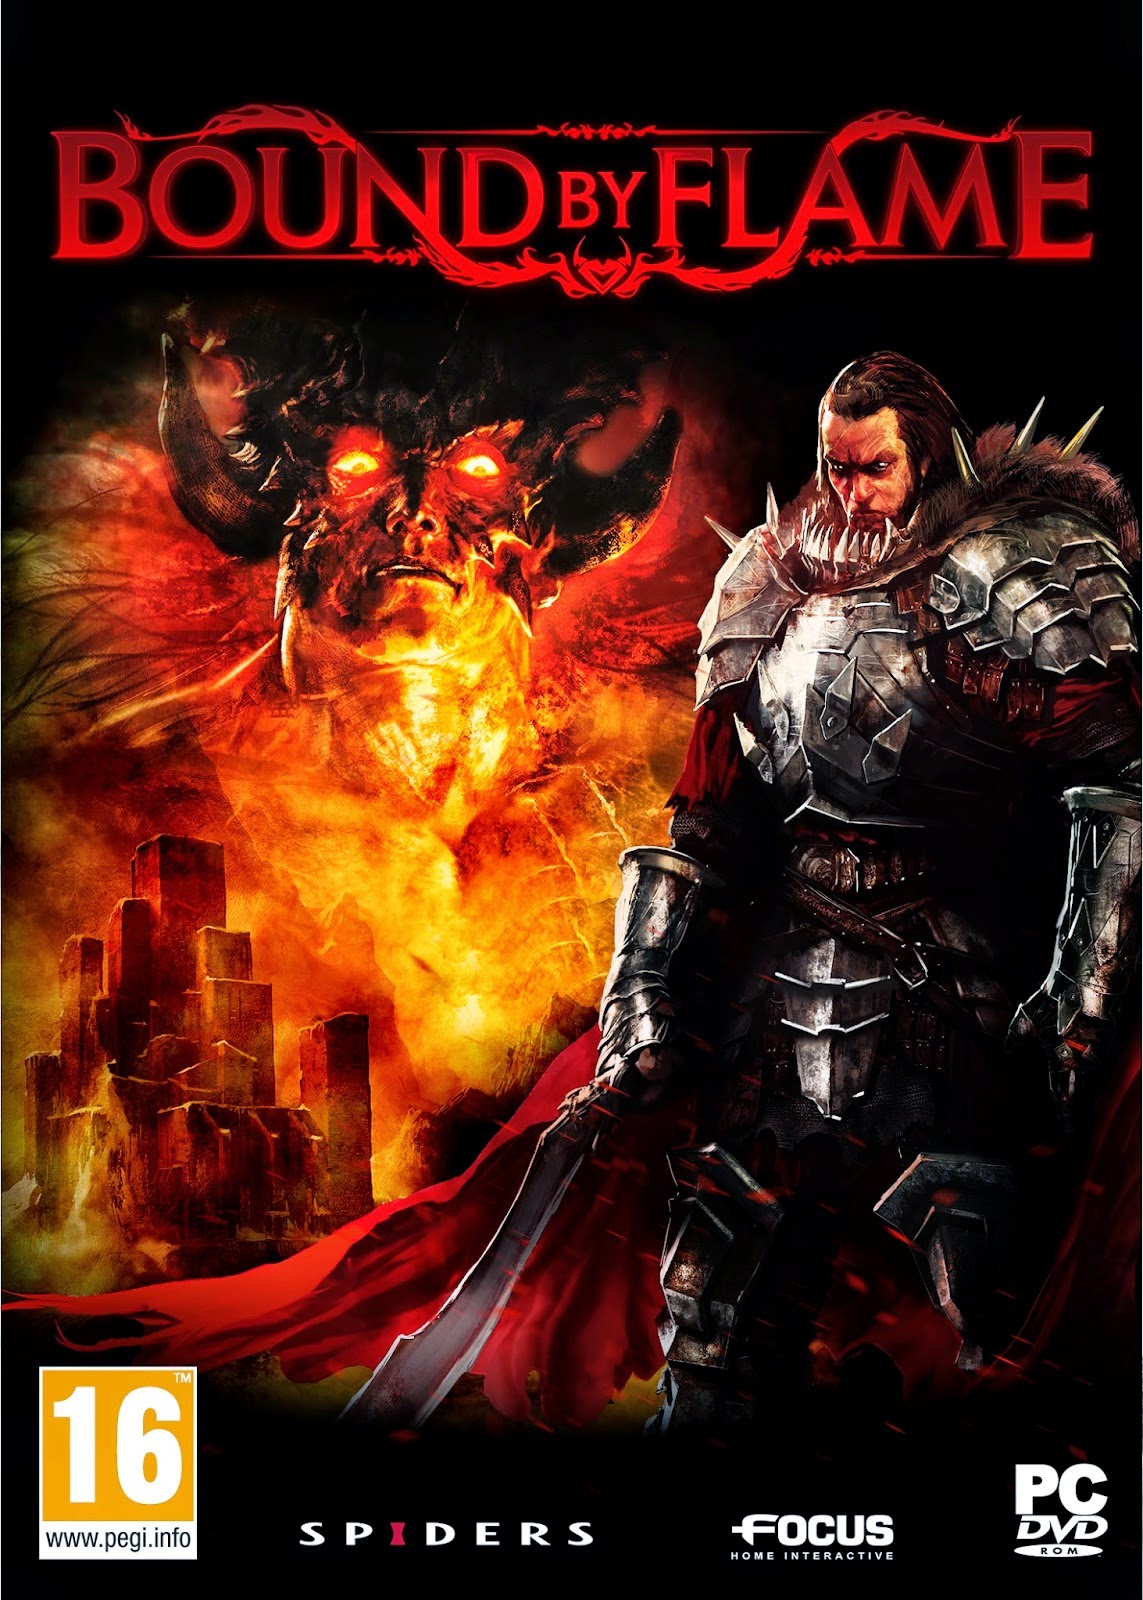 Full Version Ios: Download Free Bound By Flame Fully Full Version PC Game